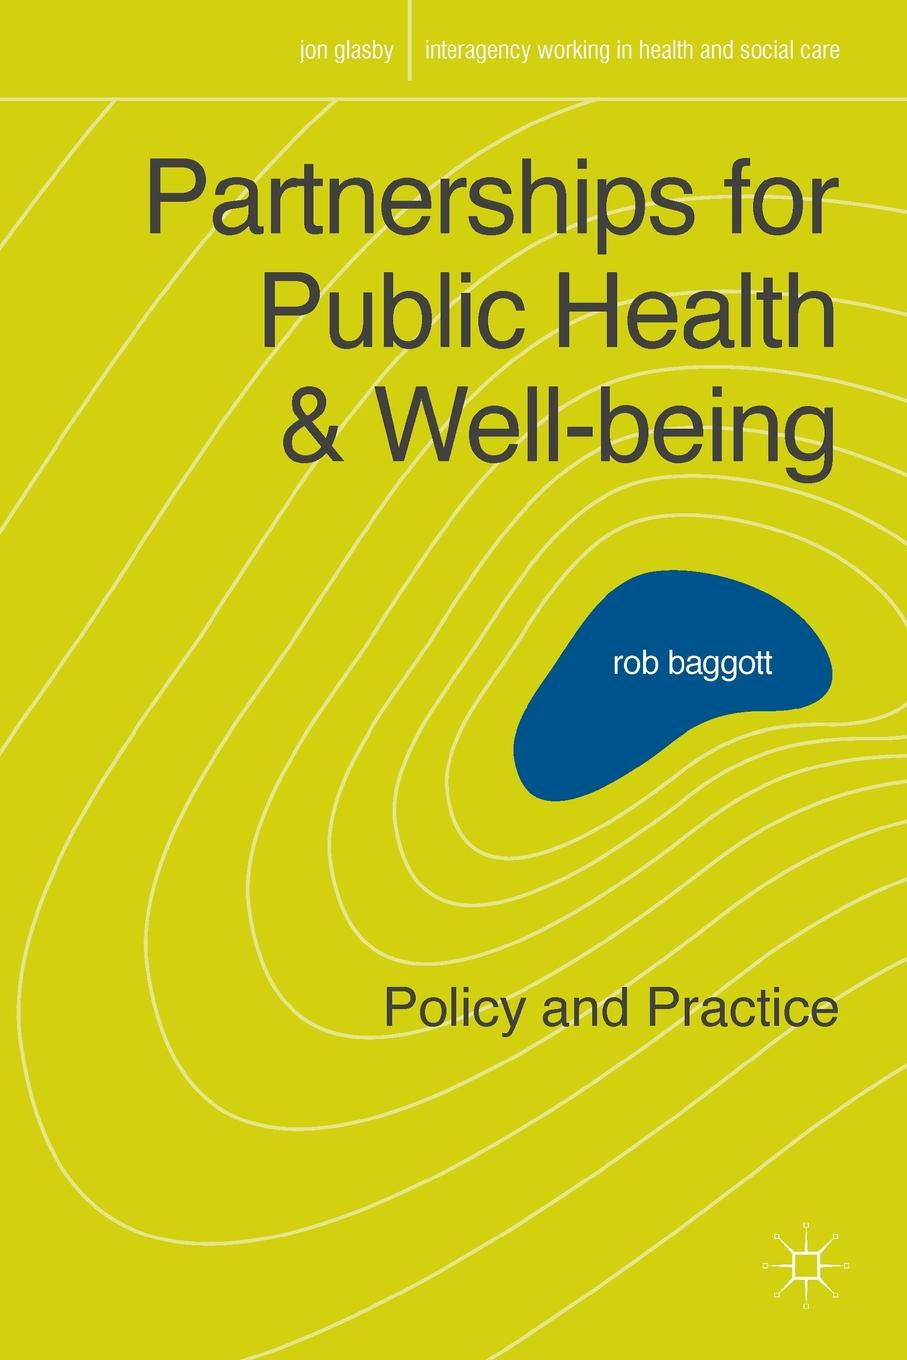 Rob Baggott Partnerships for Public Health and Well-being Policy and Practice